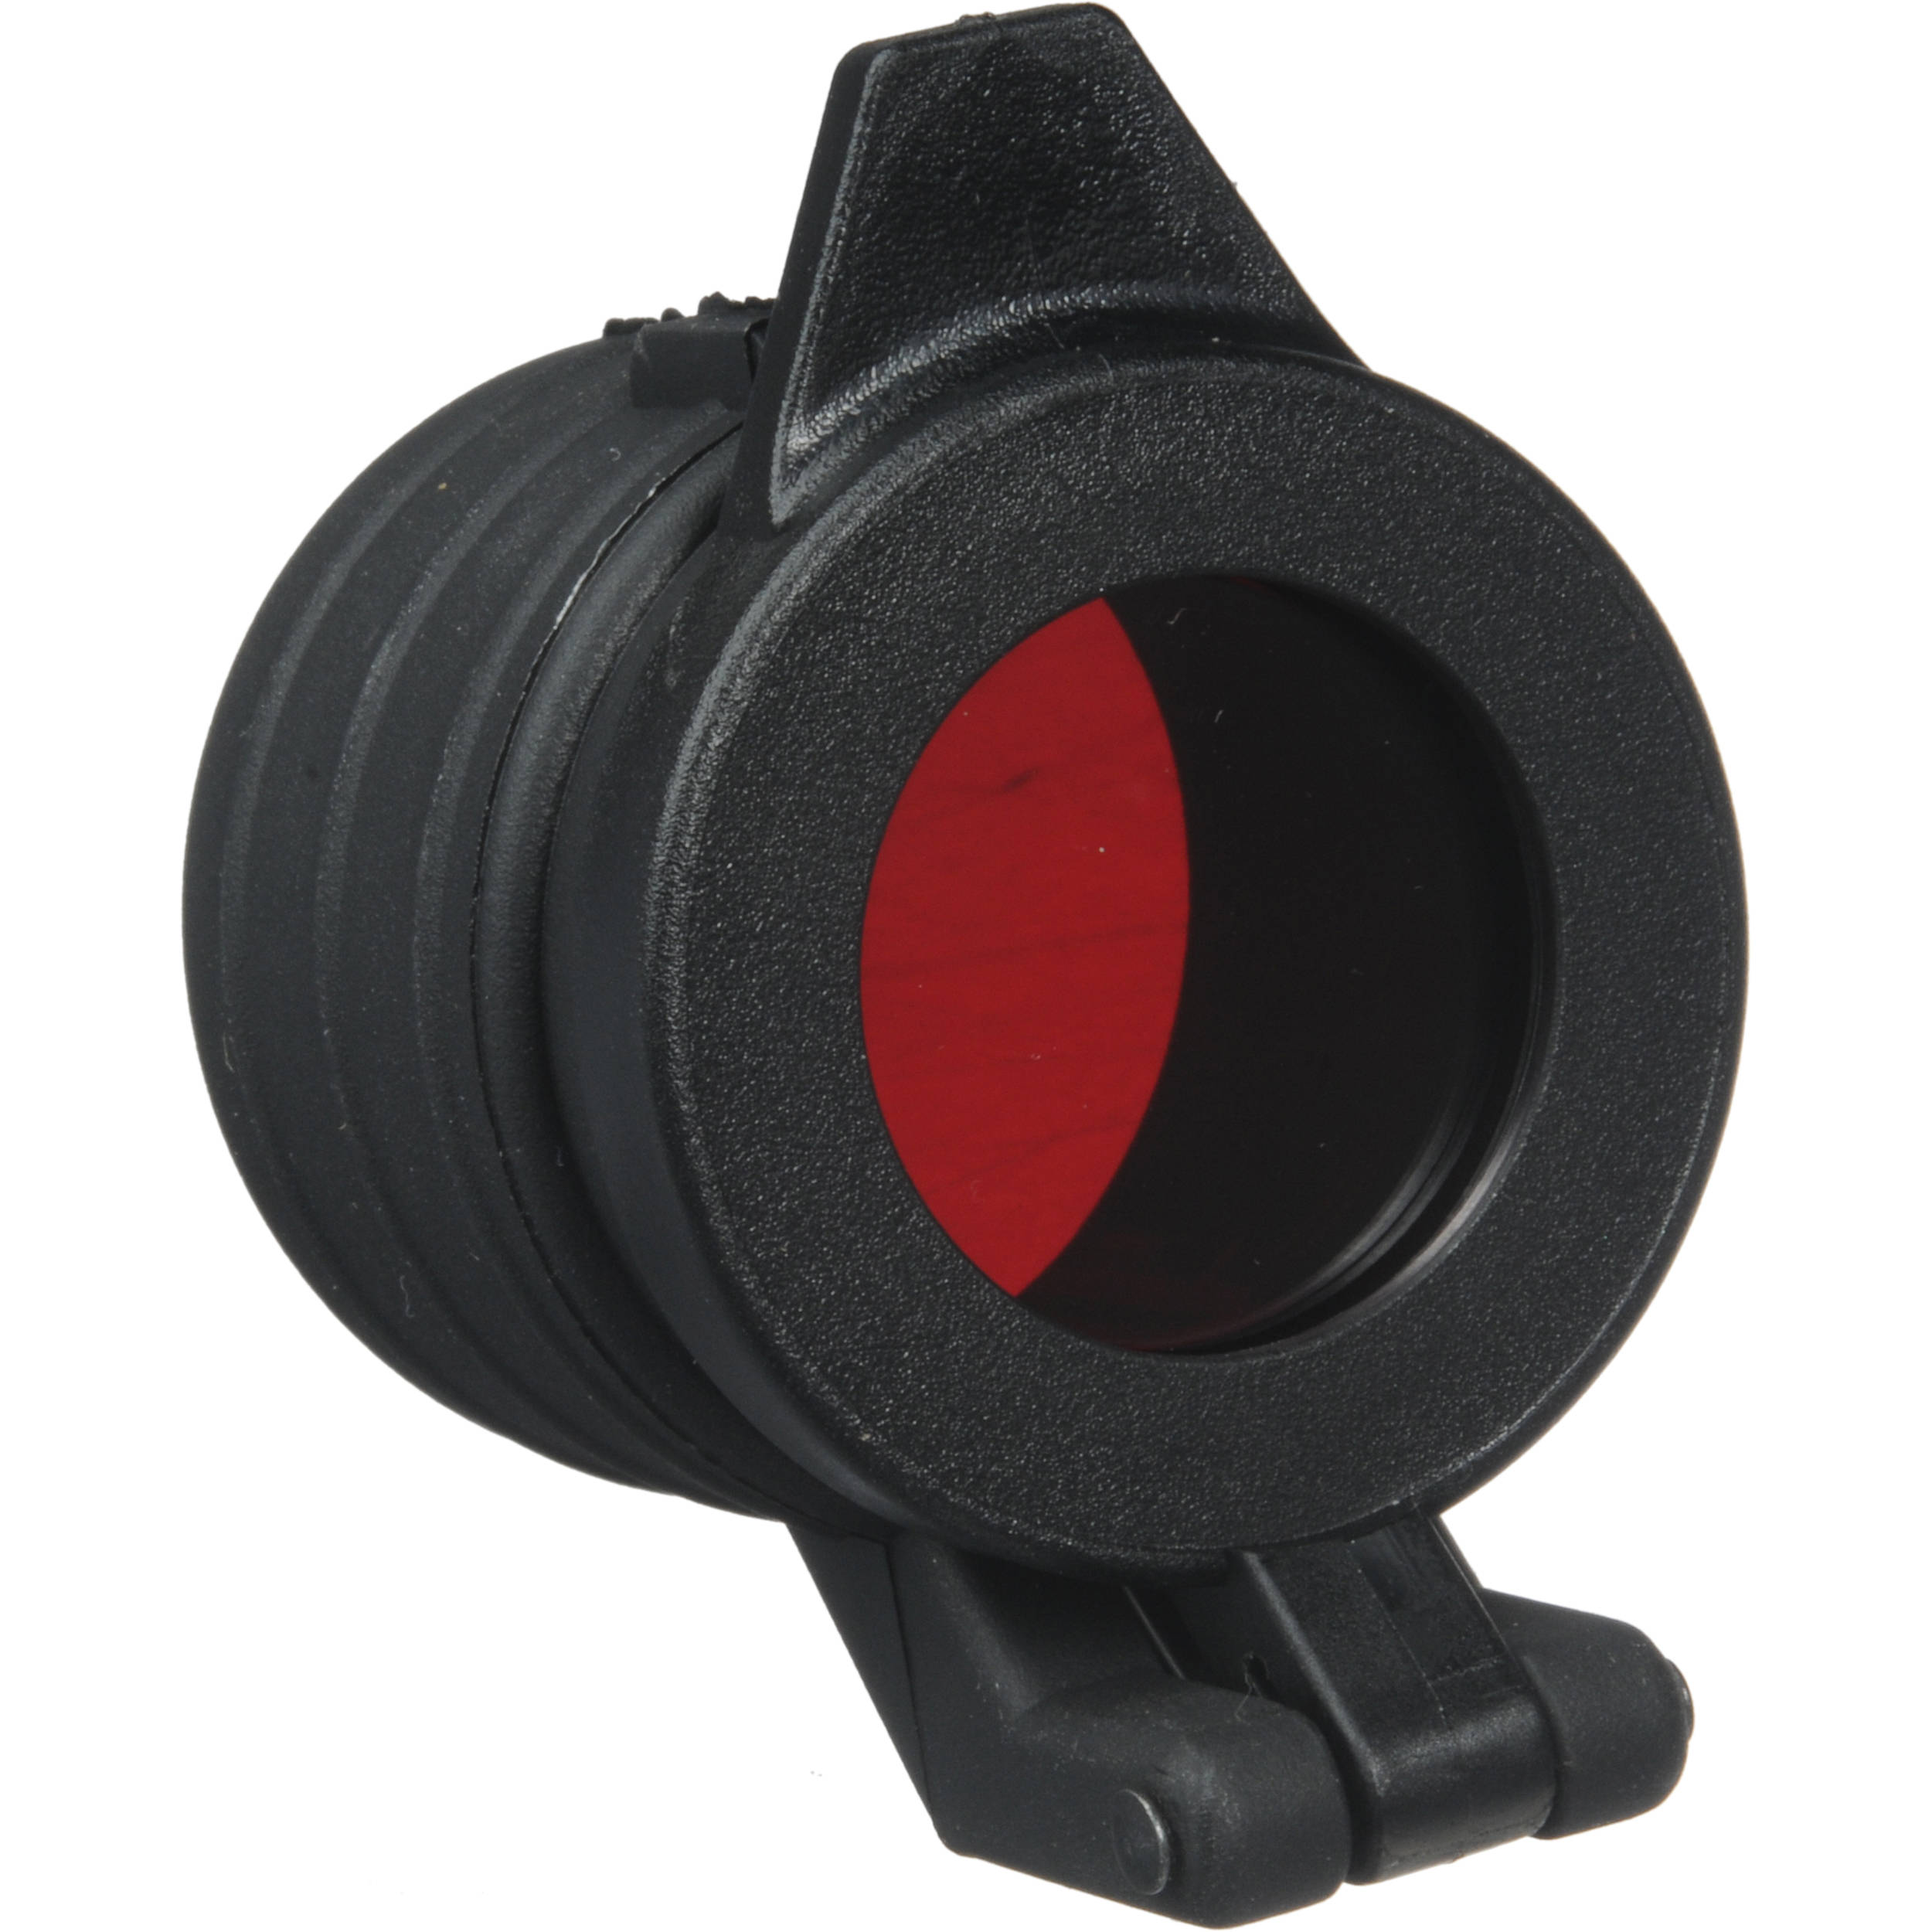 Pelican Red Filter Cap for Pelican M6 (2320)